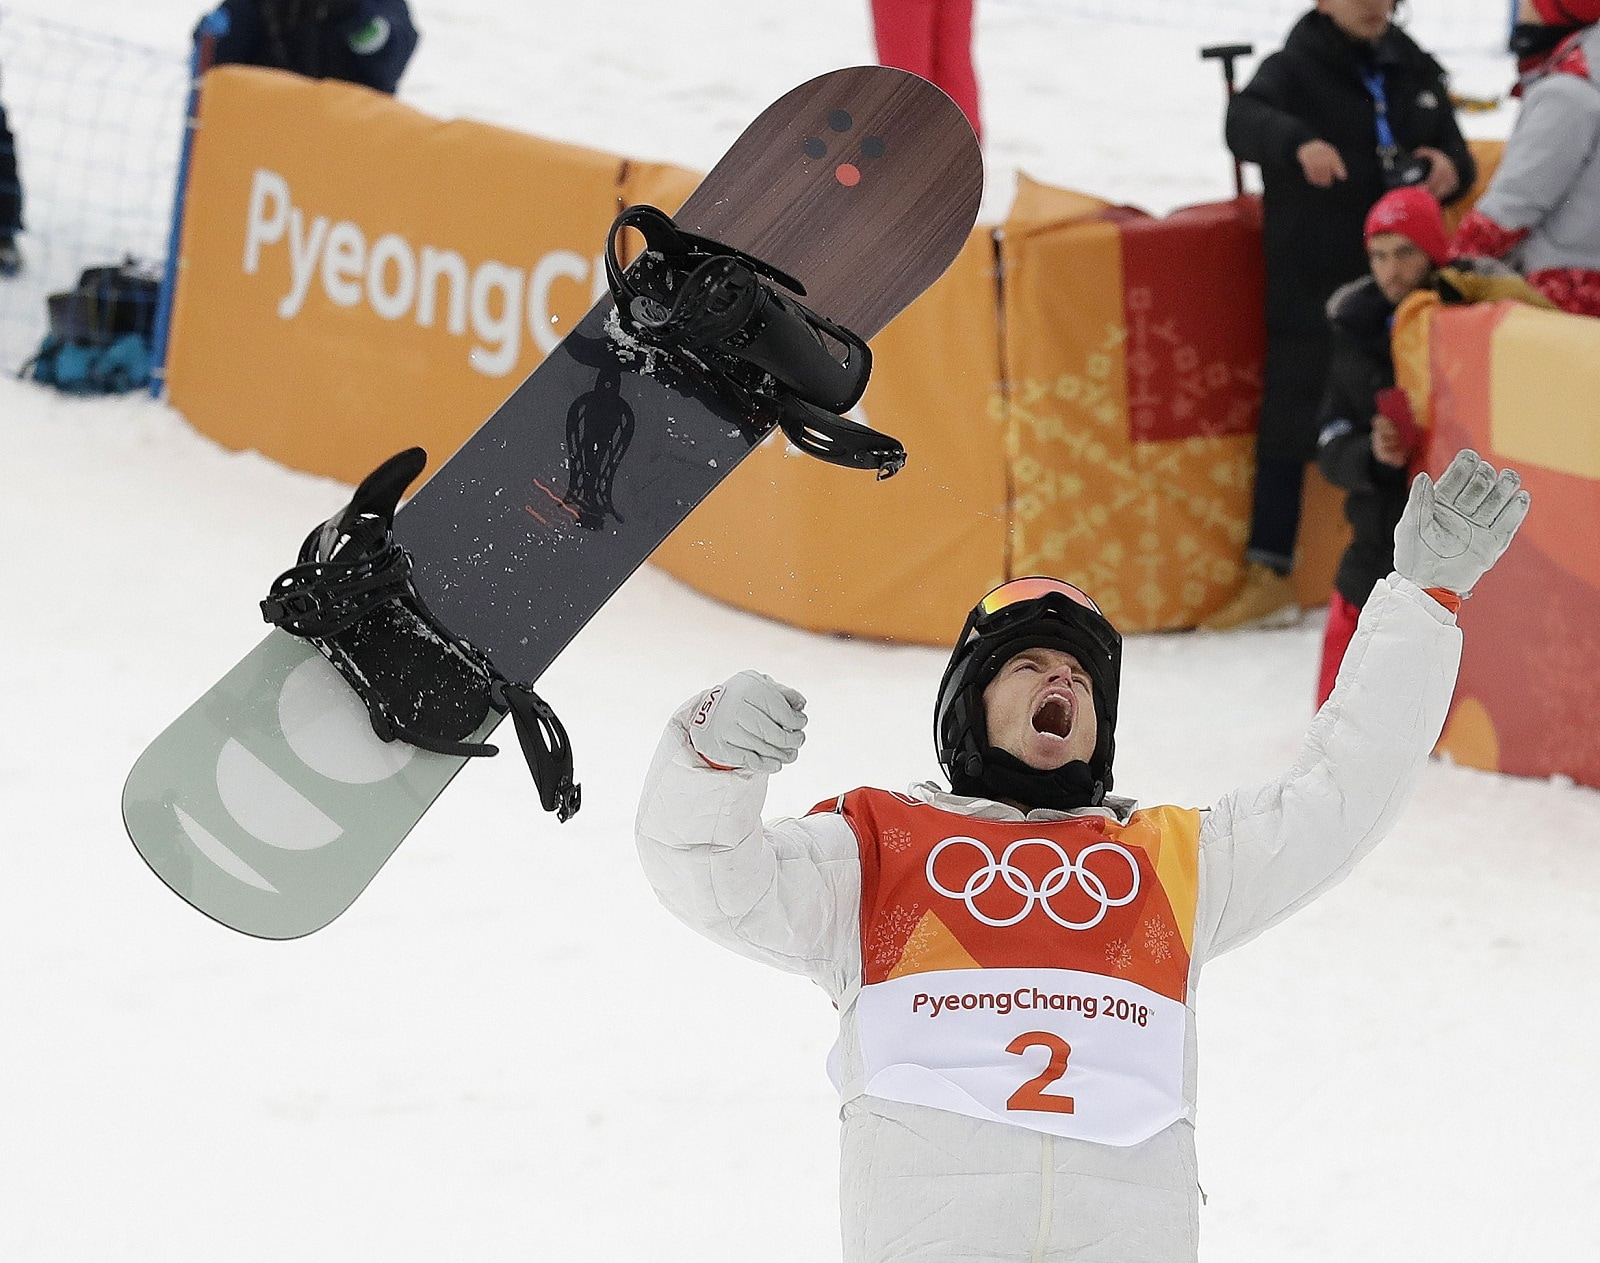 Shaun White, of the United States, celebrates winning gold after his run during the men's halfpipe finals at the 2018 Winter Olympics in Pyeongchang, South Korea, on February 14, 2018. (AP Photo/Gregory Bull)